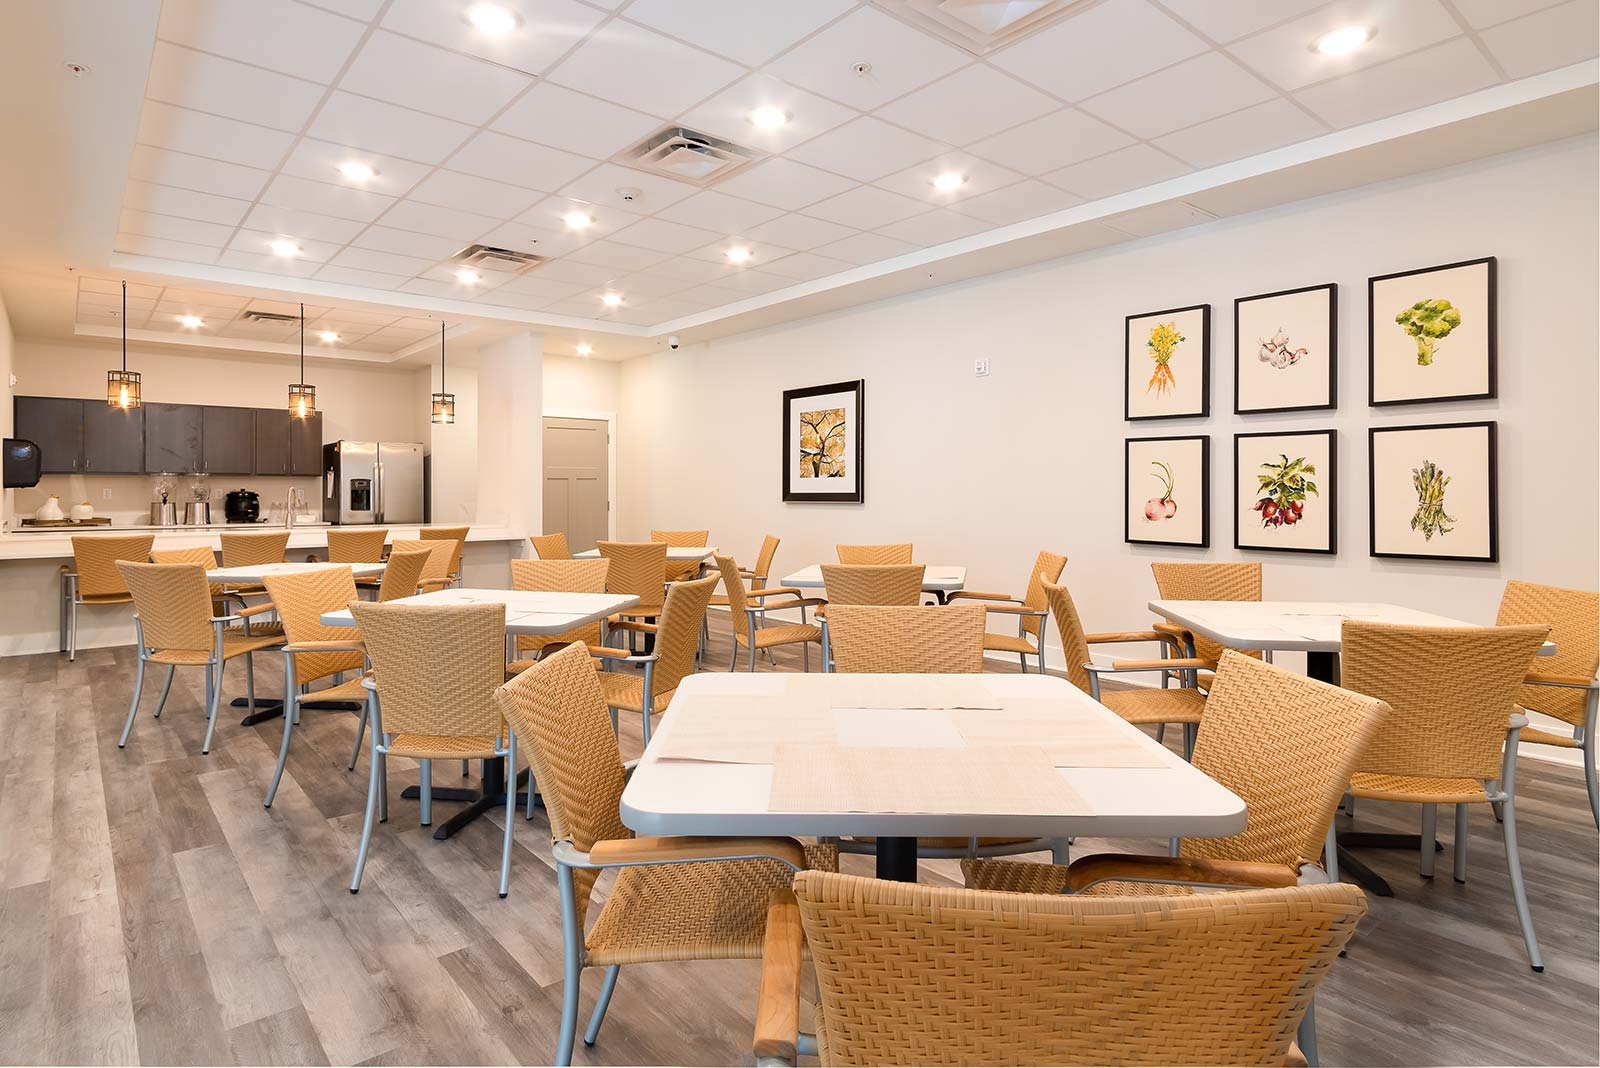 Bistro eating area with tables and chairs in our Plant City FL assisted living and memory care community